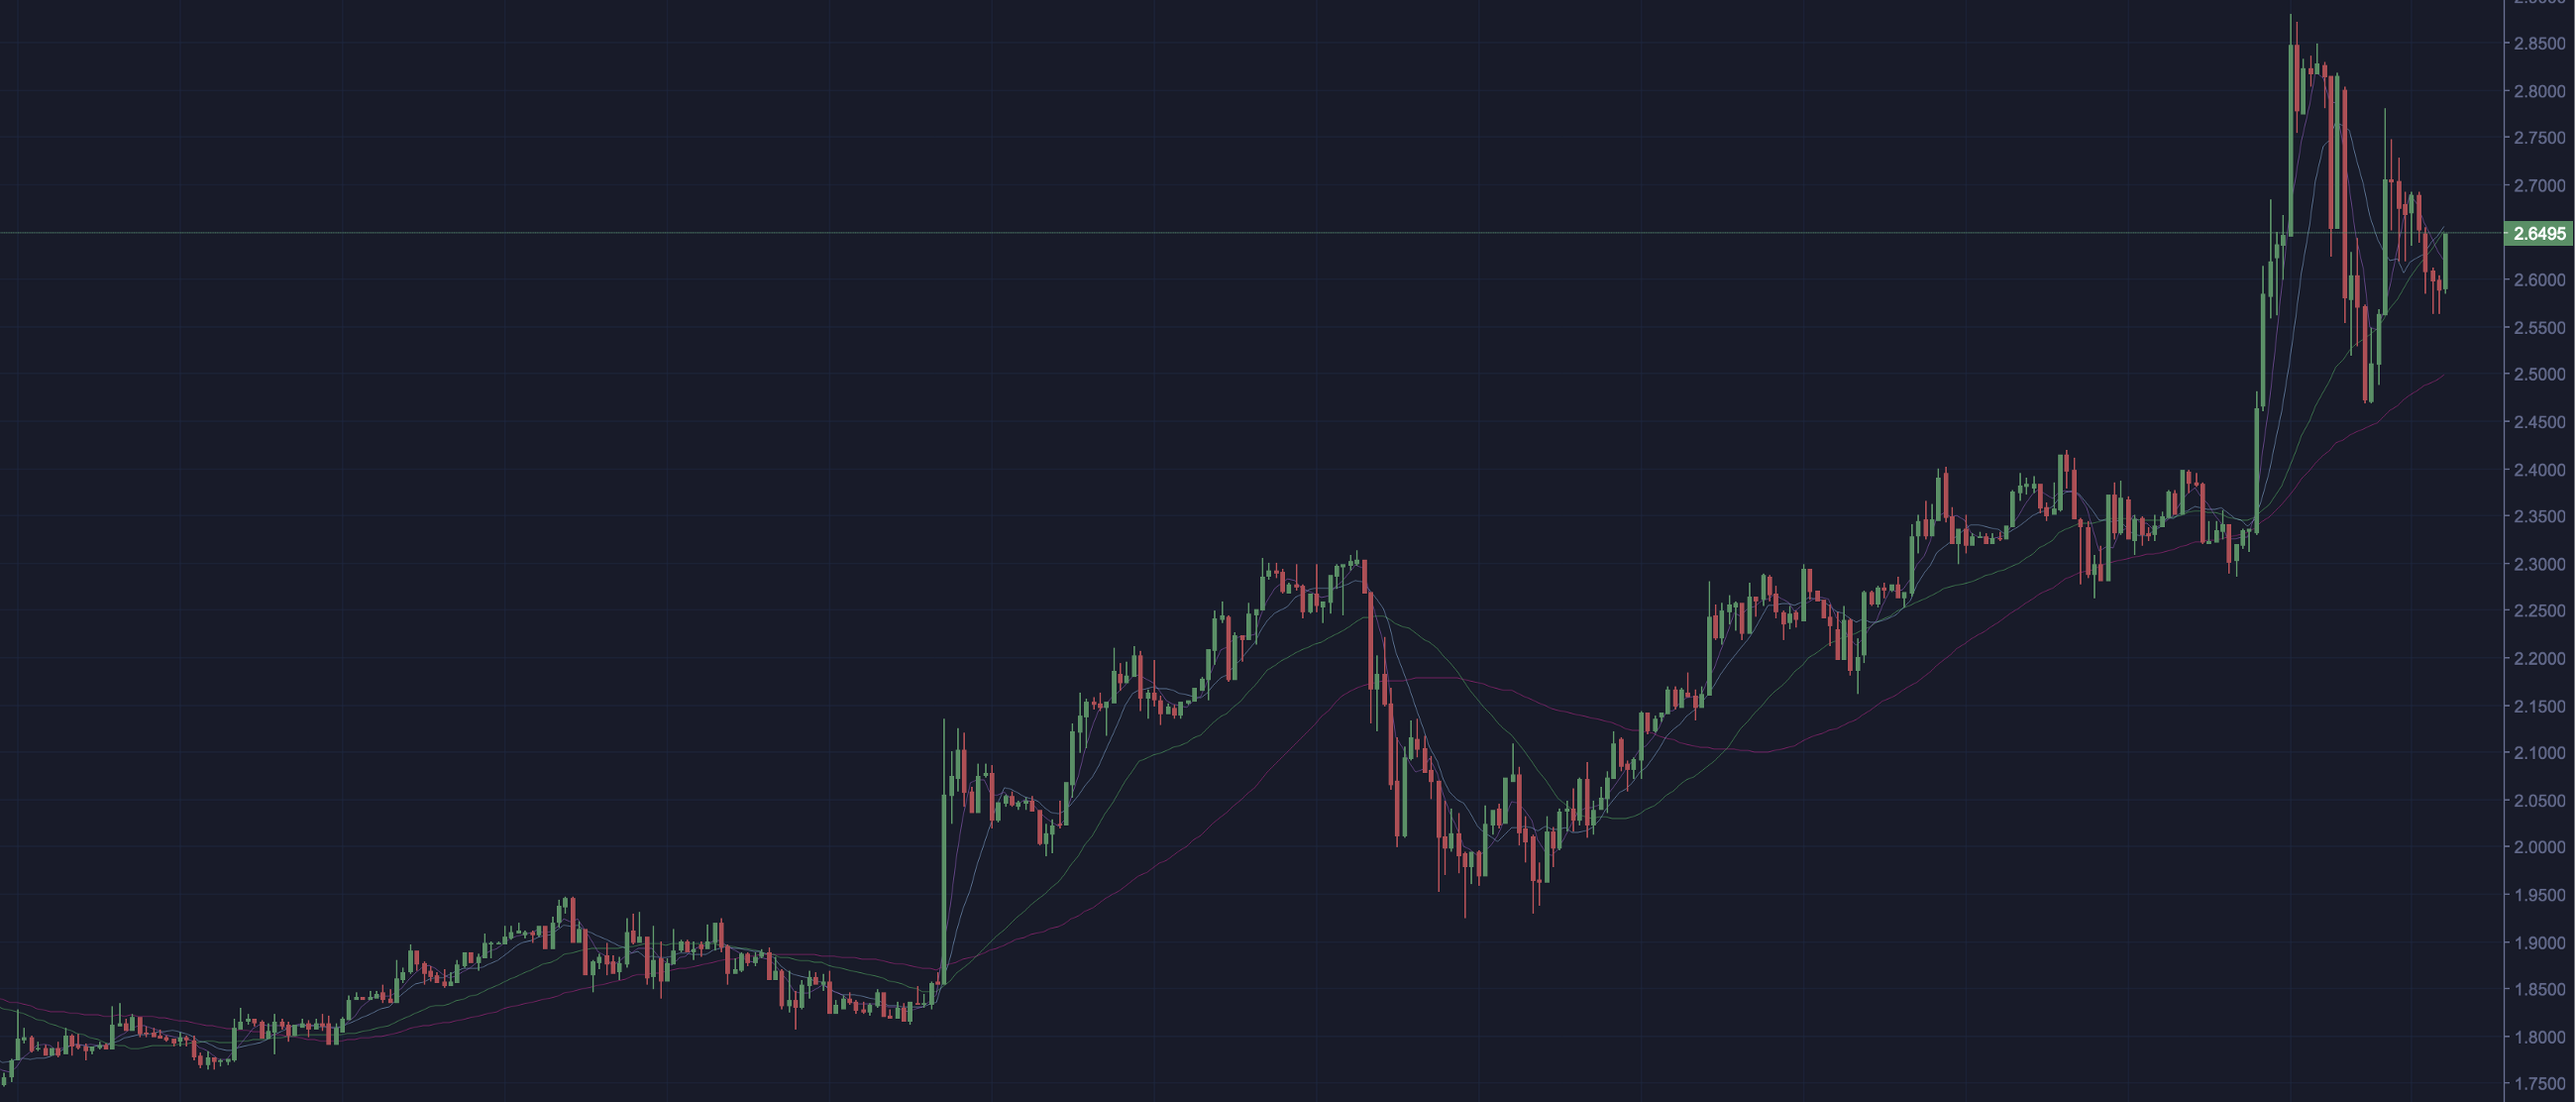 /can-huobi-pull-a-binance-i-think-they-can-and-i-think-ht-has-at-least-a-1000-upside-from-here-d11f640e80cd feature image